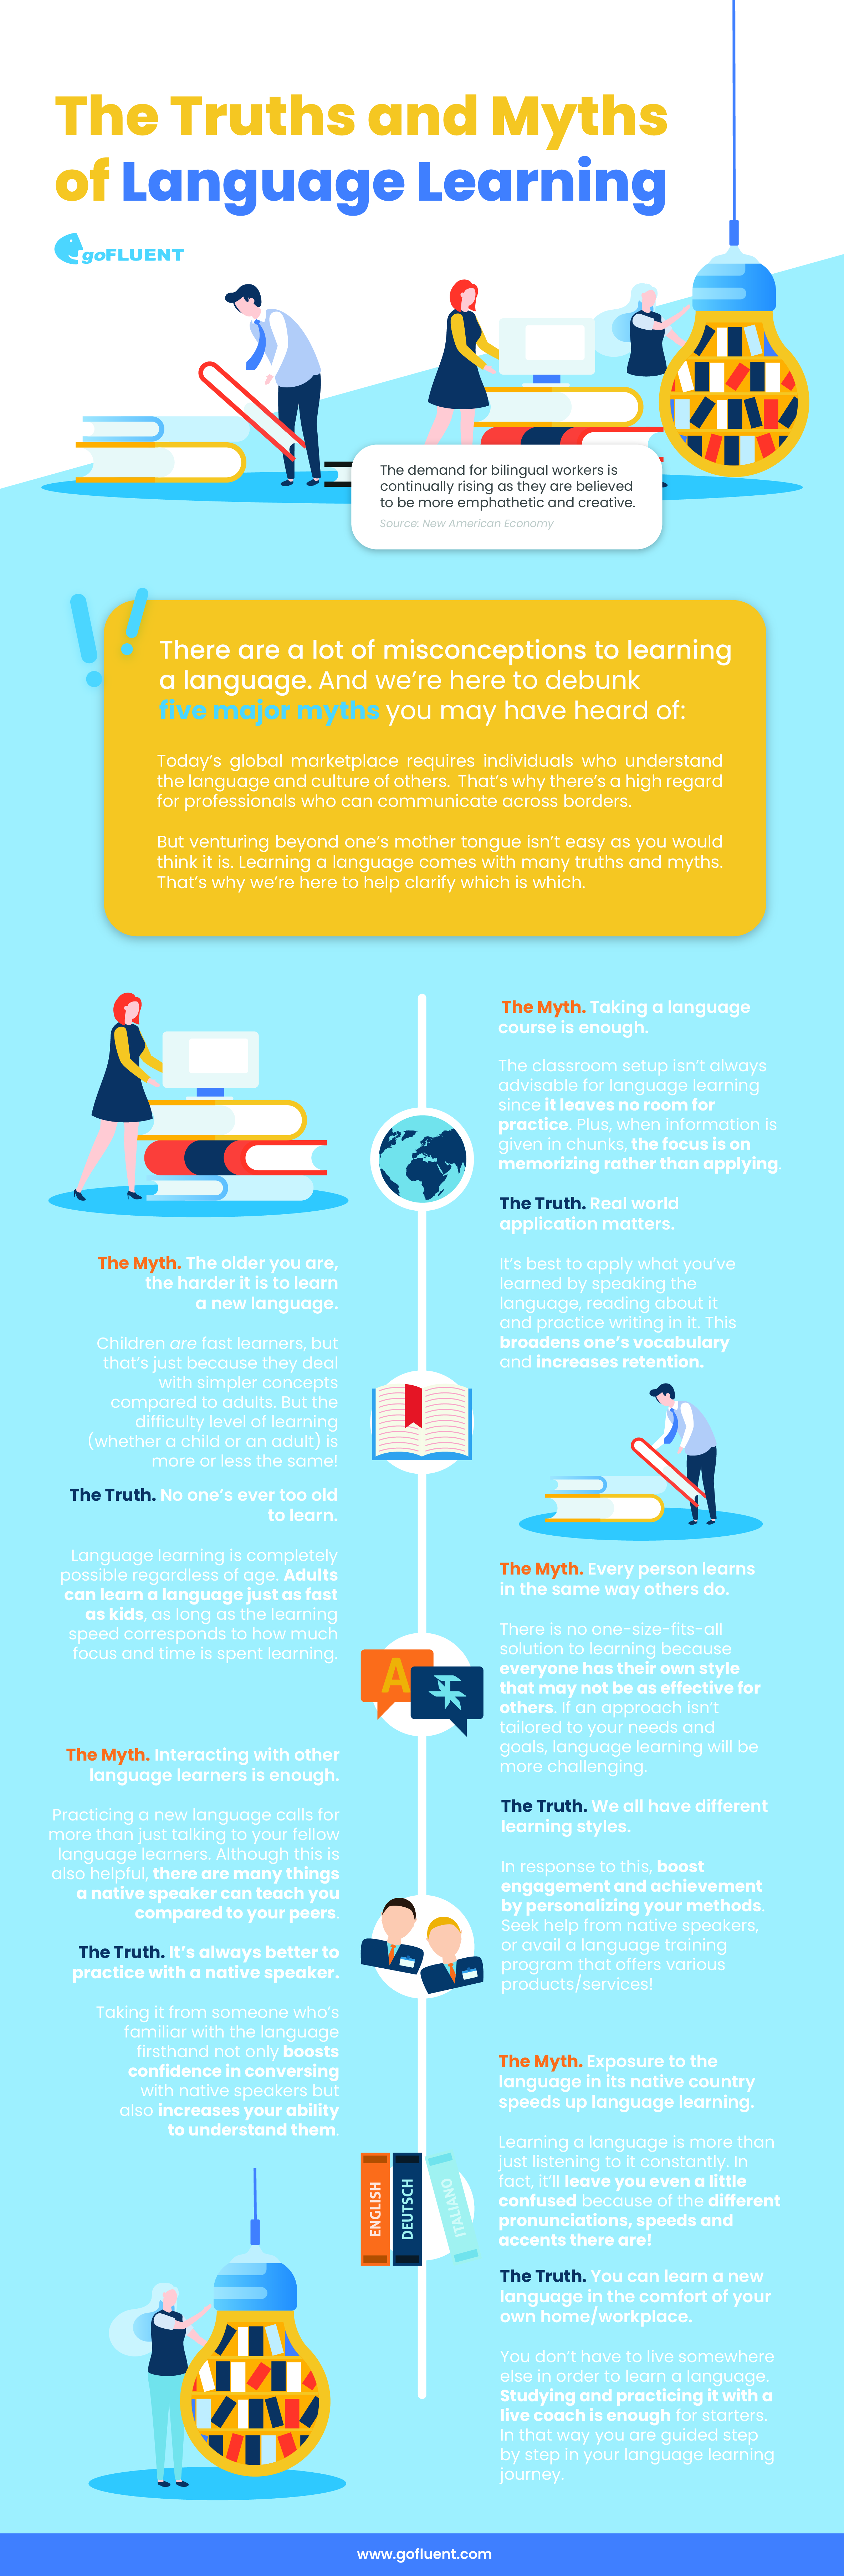 a goFLUENT Infographic on Truths and Myths of Language Learning